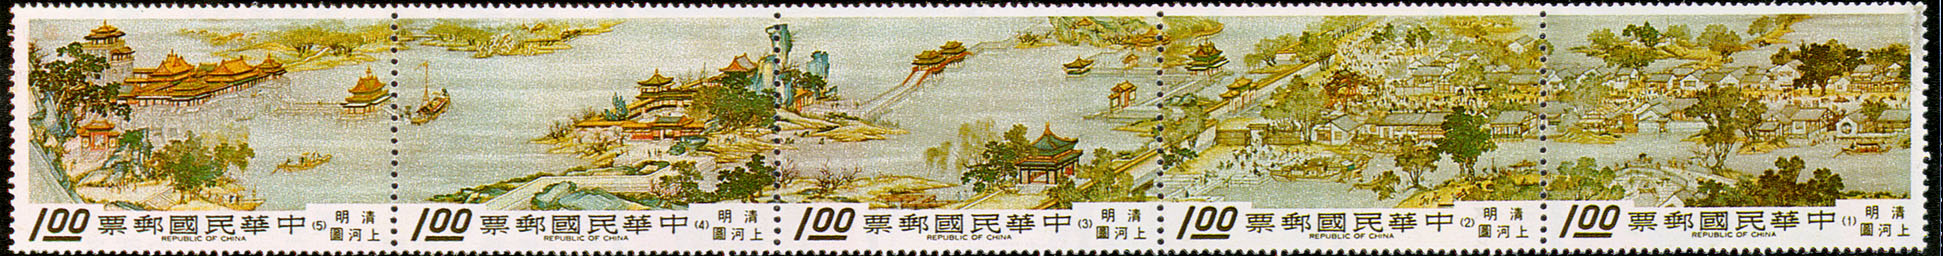 (S53.1  S53.2  S53.3  S53.4  S53.5)Special 53 A City of Cathay - A Famous Handscroll Painting in the Palace Museum- Stamps (1968)